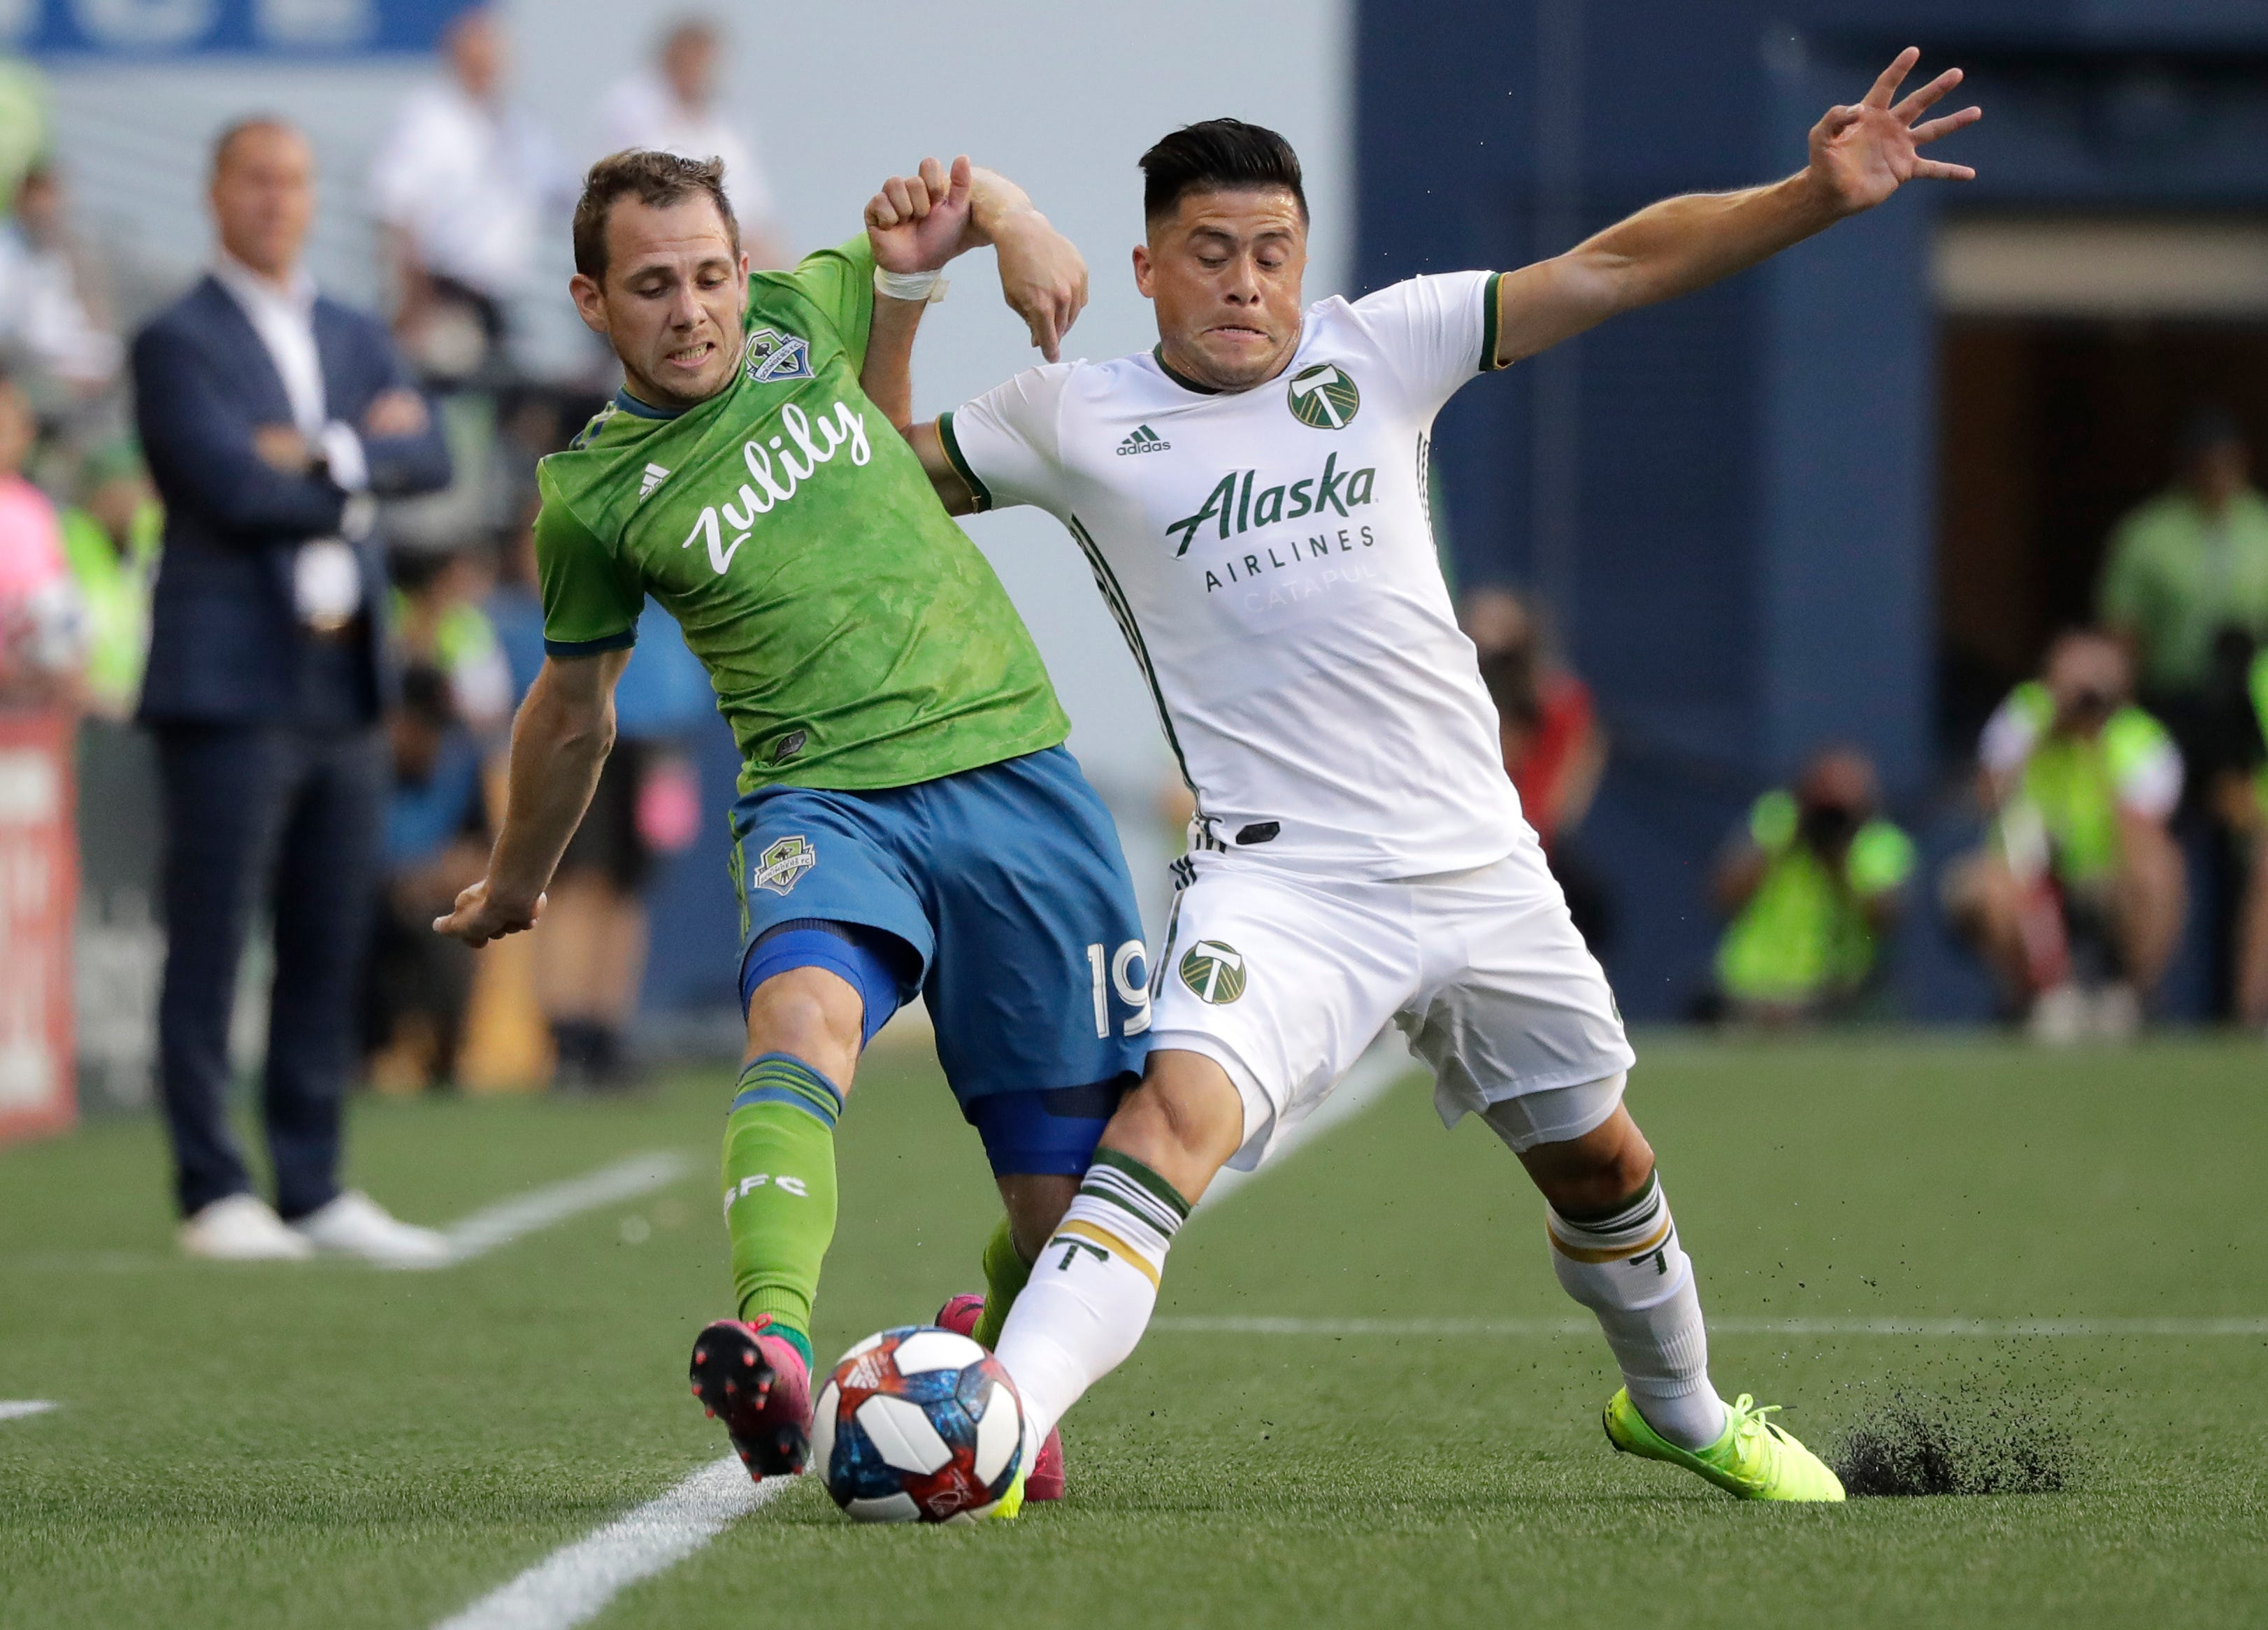 Fernandez scores twice as Timbers outlast rival Sounders 2-1